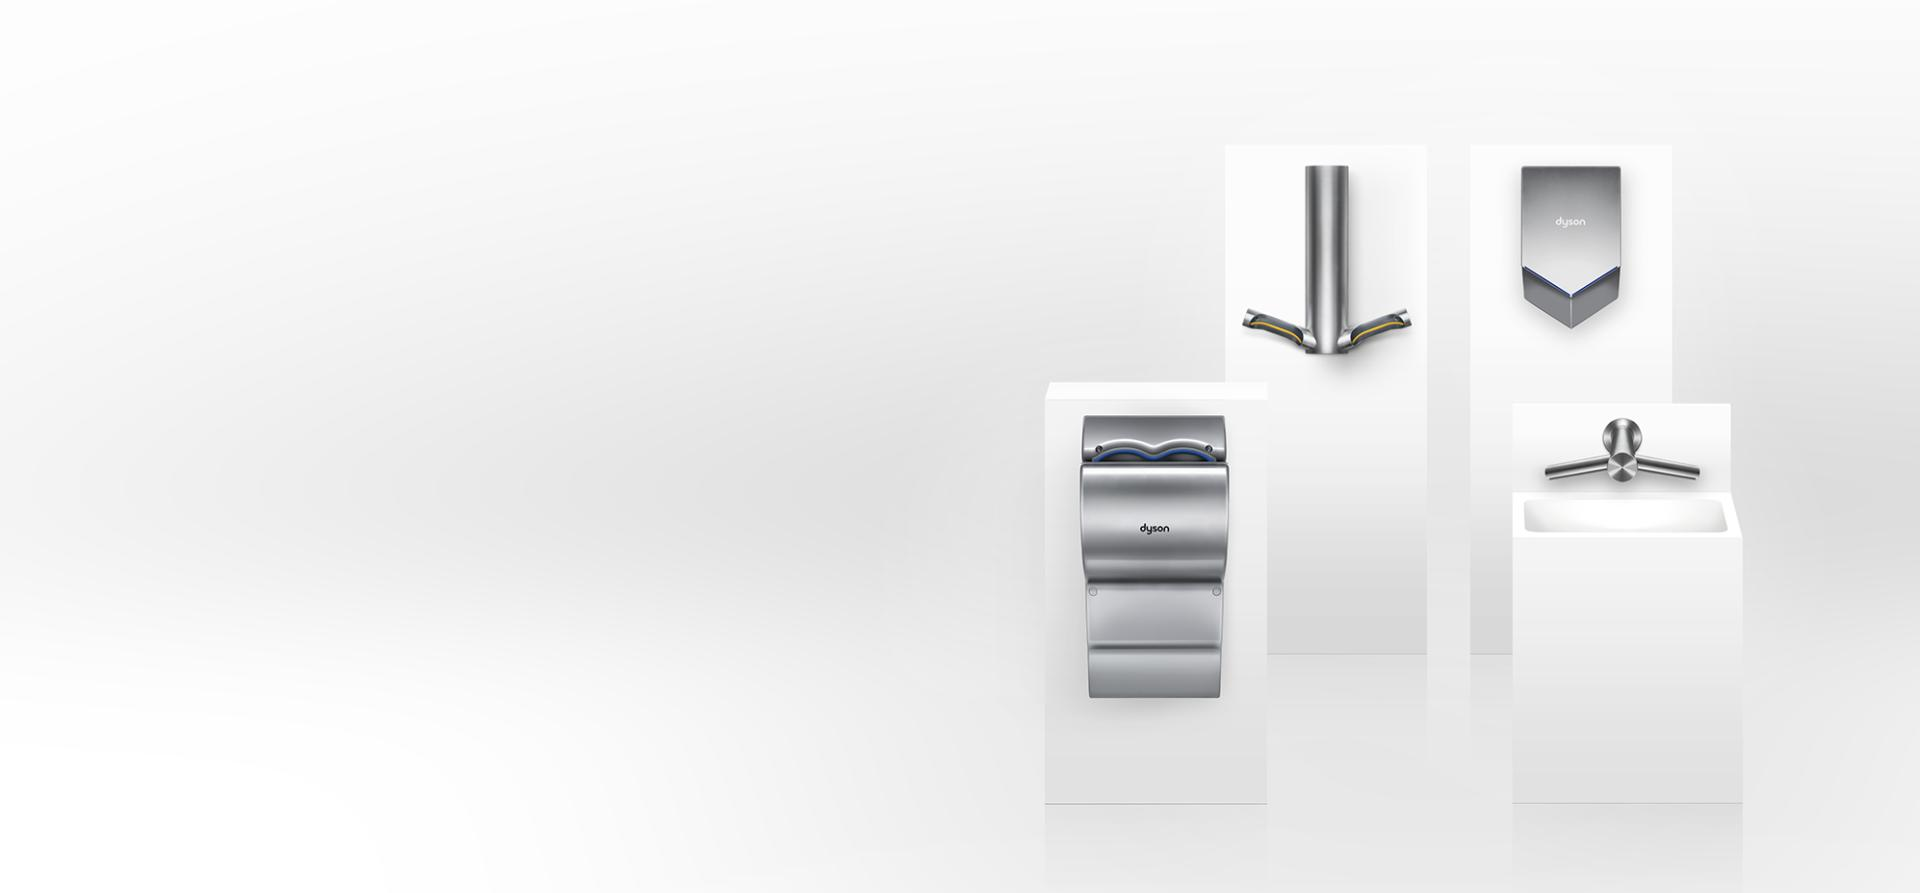 Dyson Airblade product range